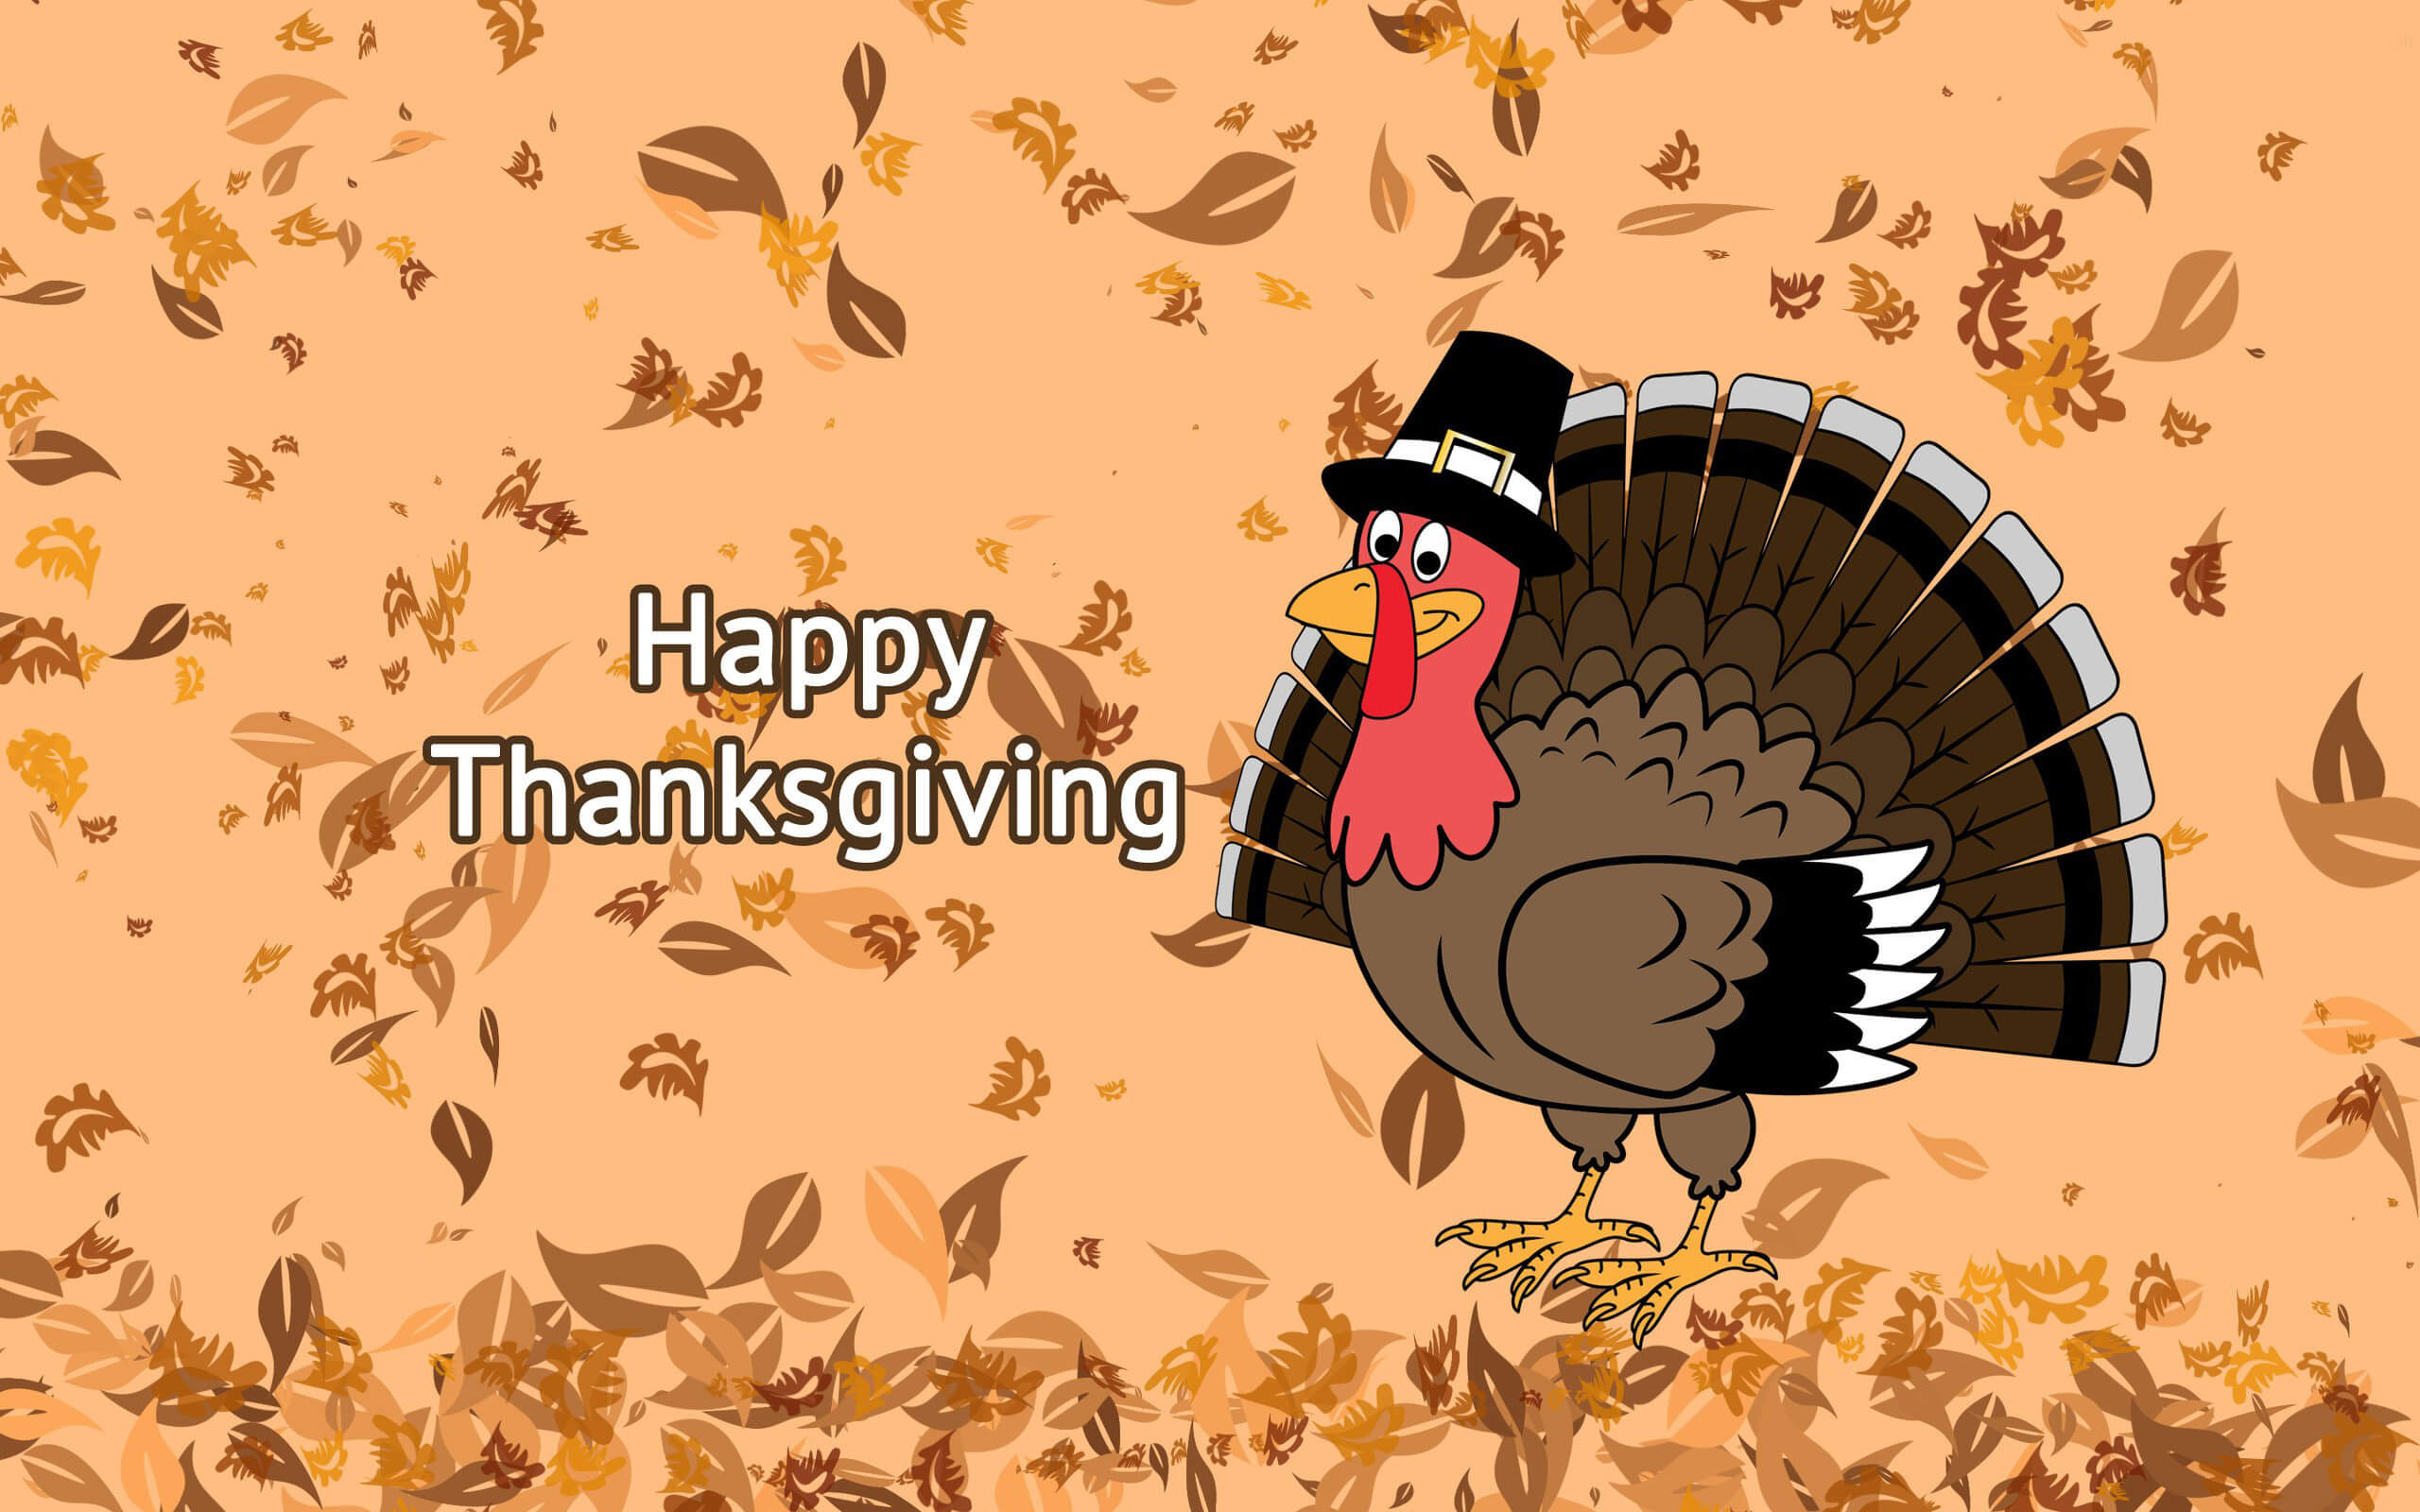 happy thanksgiving day falling leaves on turkey background hd wallpaper